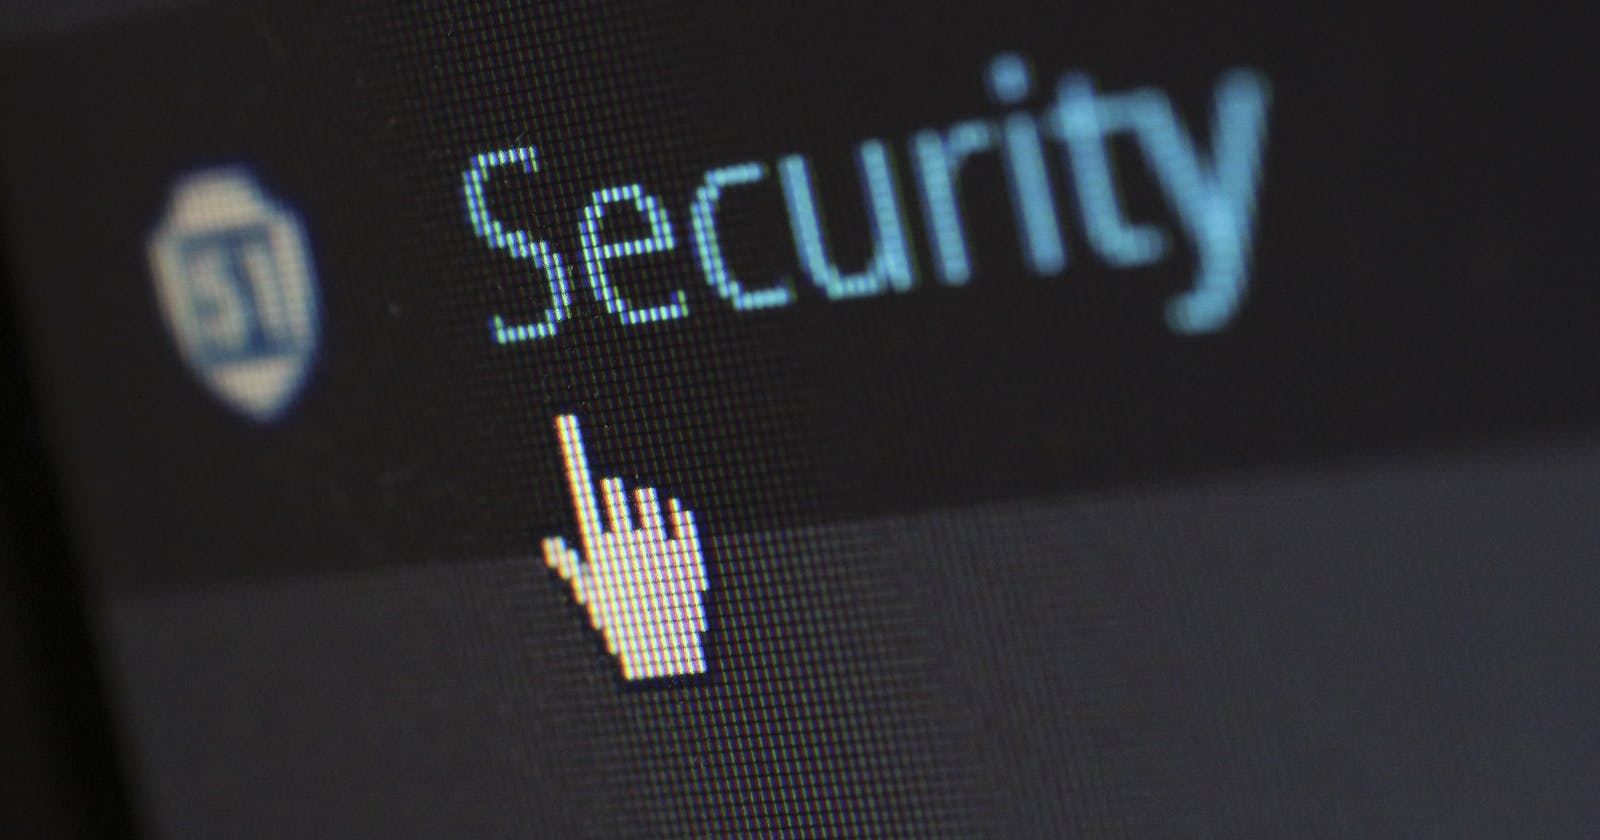 Best Practices for Securing Websites from Attacks